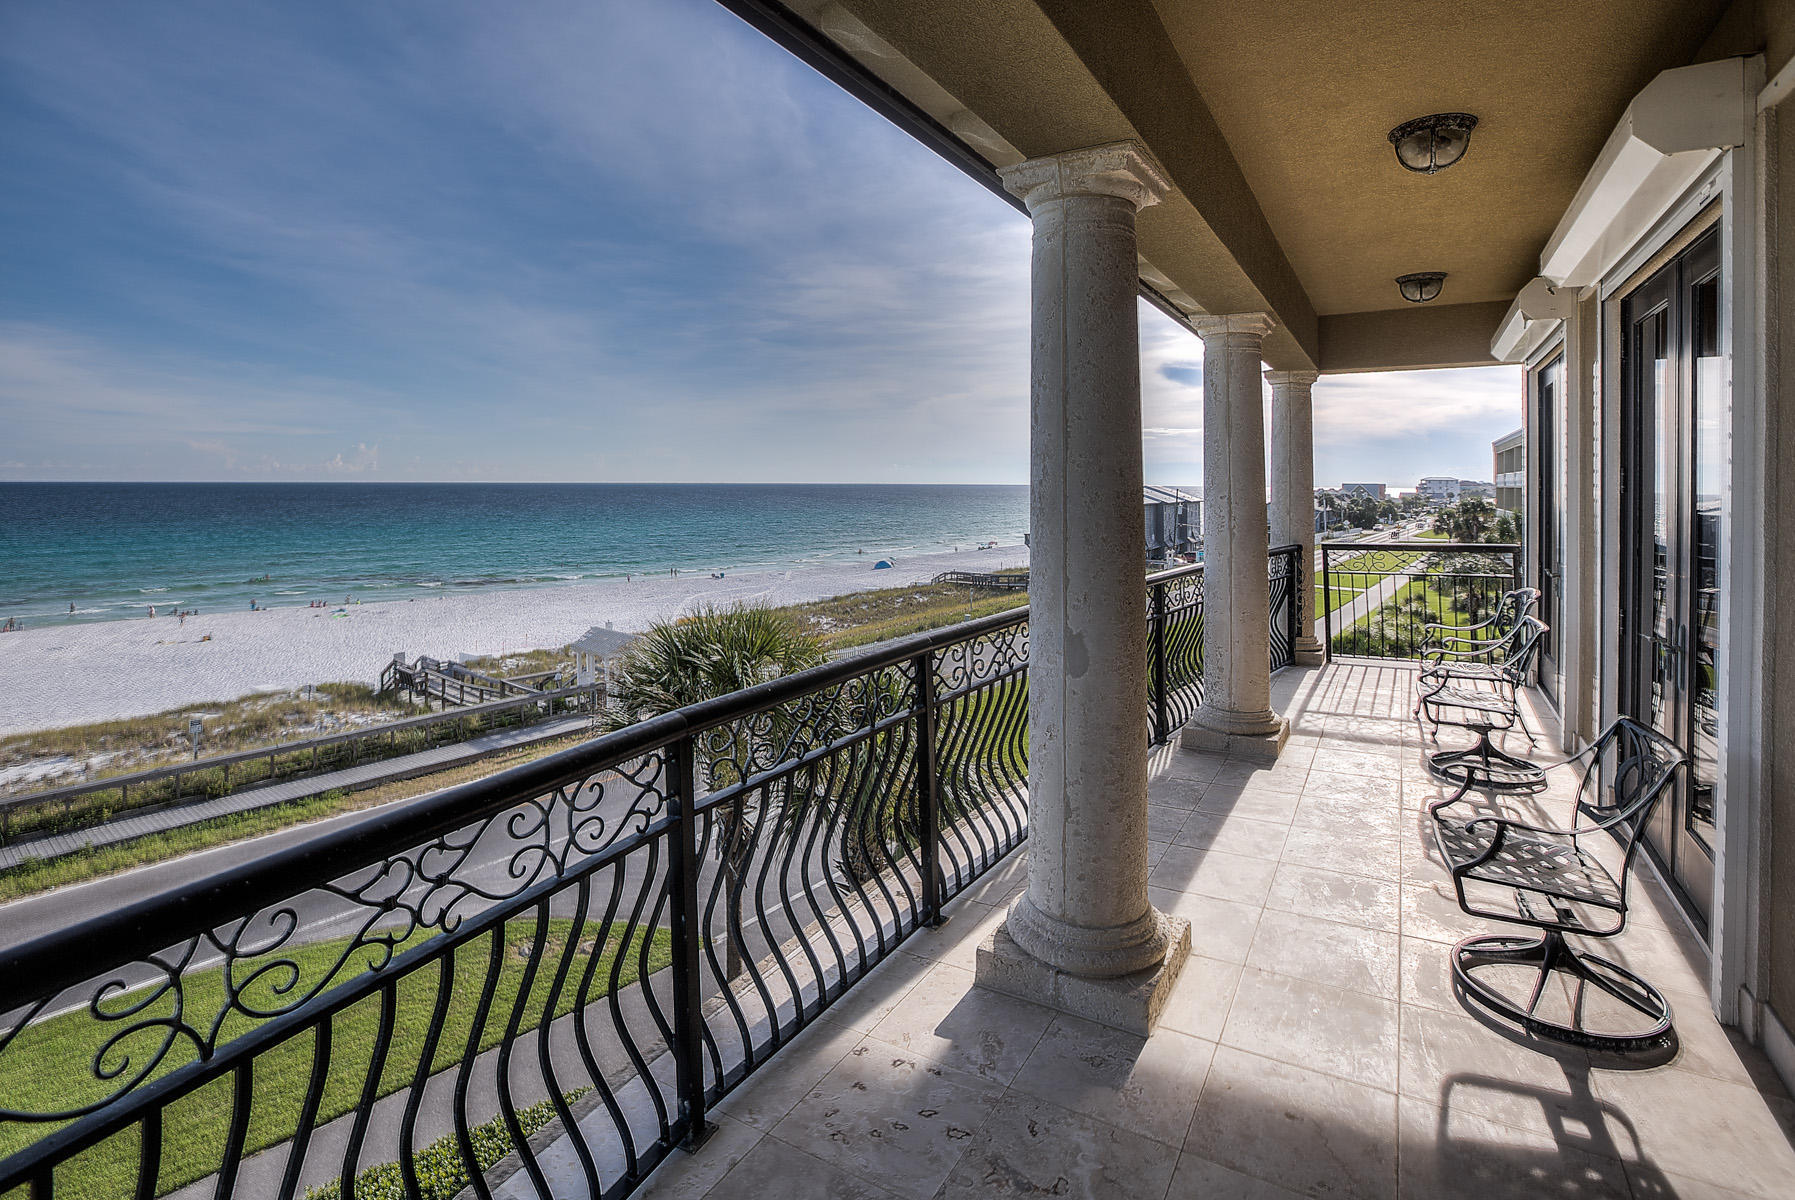 Single Family Home for Sale at UNPARALLELED GULF VIEW LUXURY LIVING 17 Saint Martin Circle Miramar Beach, Florida, 32550 United States